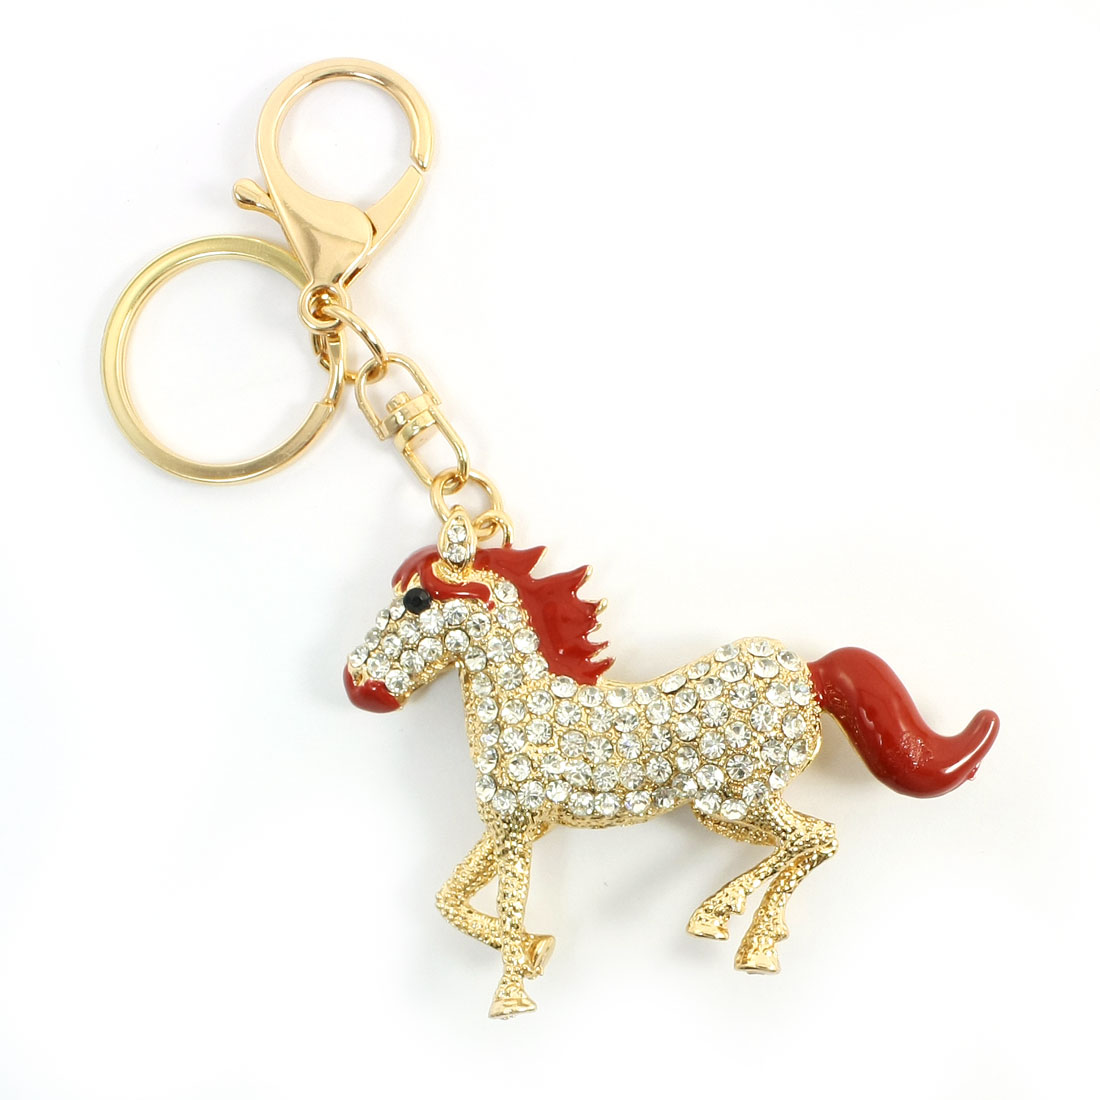 Plastic Faceted Rhinestone Inlaid Hollow Horse Design Keyring Keychain